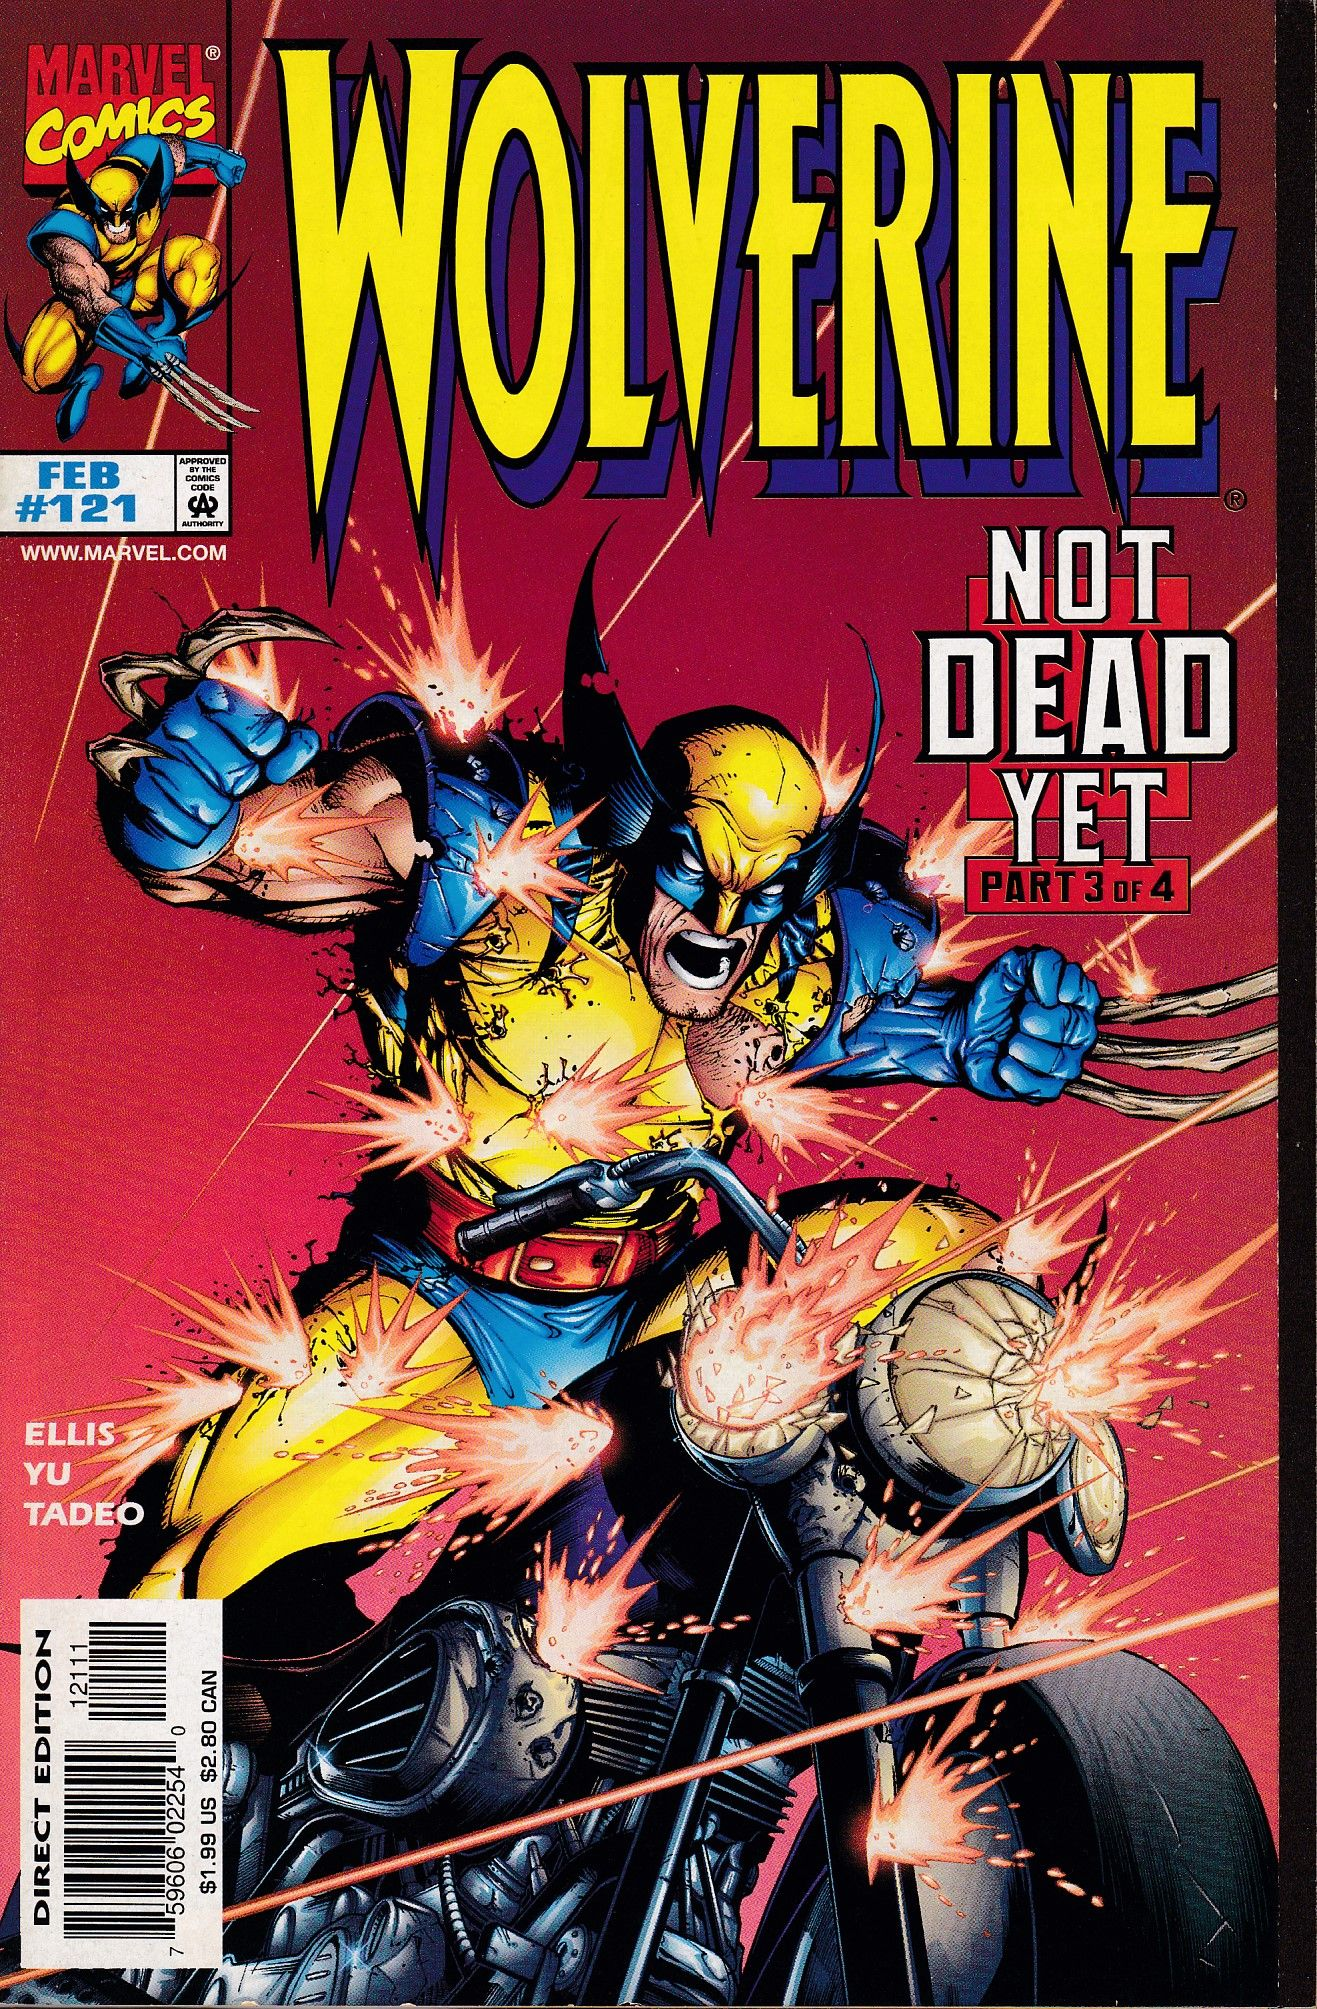 Wolverine 121 Marvel Comics Vol 2 Wolverine Comic Comics Wolverine Comic Art